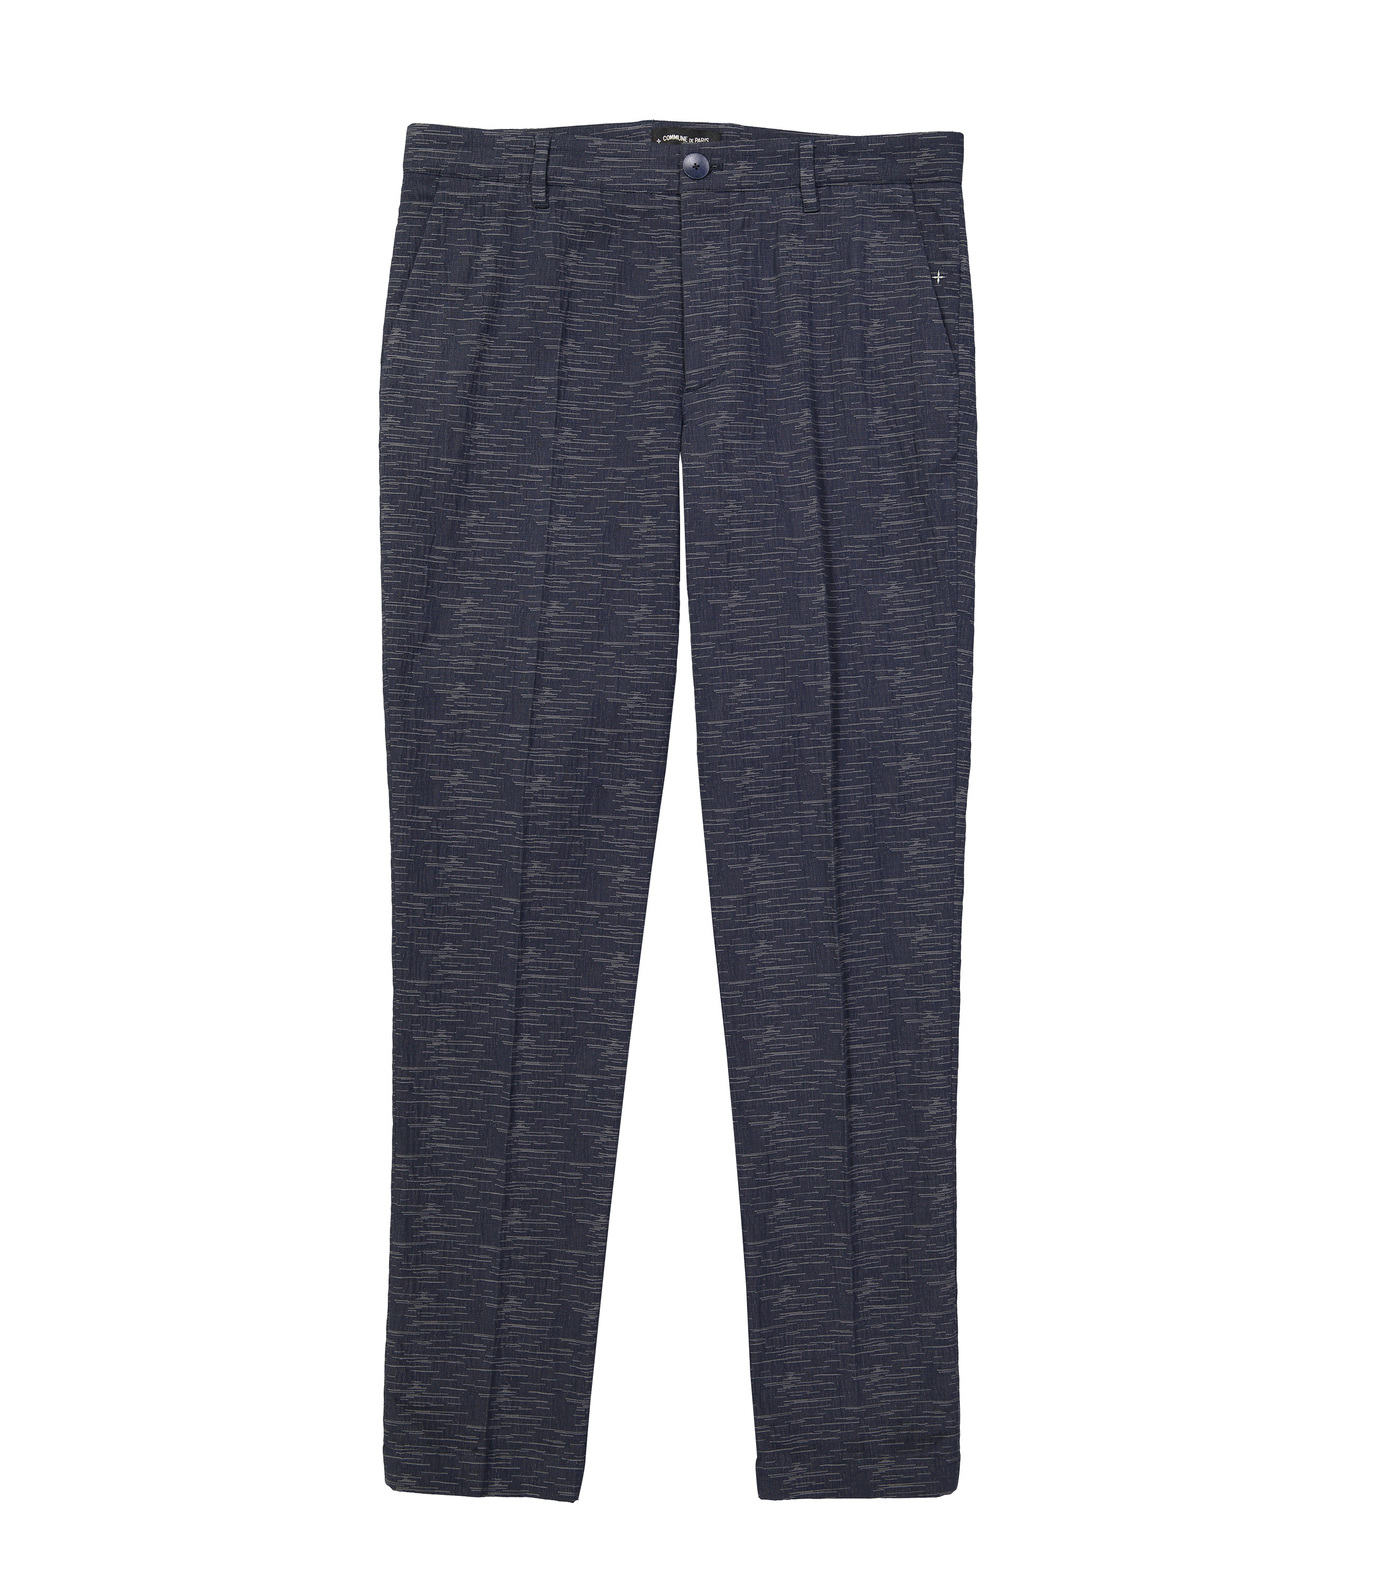 PANTS  GN6 - AKATRE - Navy